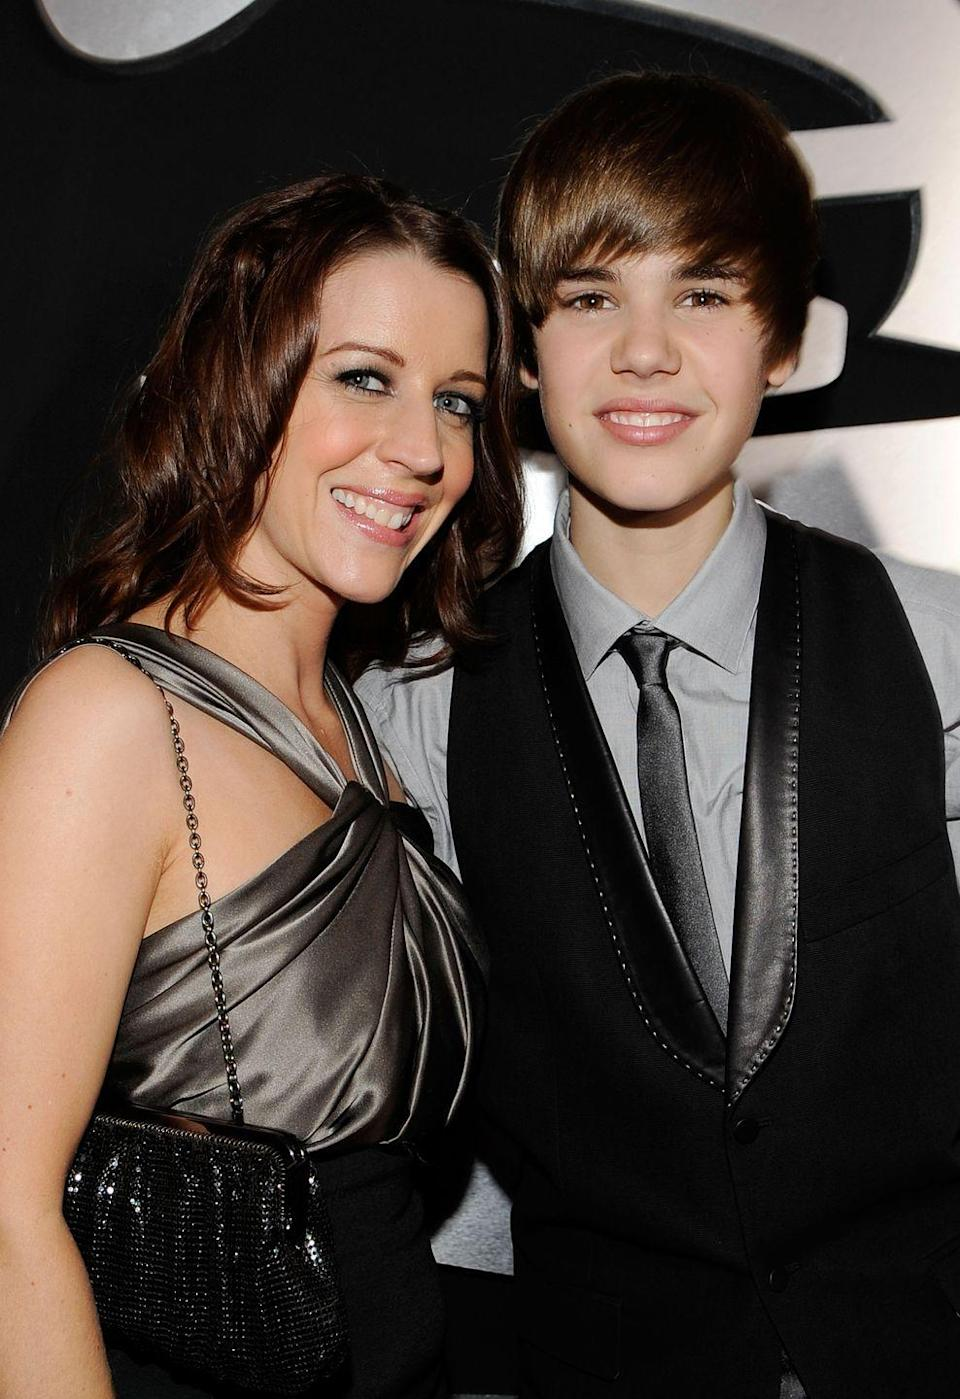 """<p>Though the Biebs has patched things up with his formerly estranged mom, Pattie Mallette, the duo had a rocky past for a couple of years.</p><p>In a 2015 <a href=""""https://www.billboard.com/articles/news/cover-story/6753004/justin-bieber-fame-faith-selena-gomez"""" rel=""""nofollow noopener"""" target=""""_blank"""" data-ylk=""""slk:Billboard cover story"""" class=""""link rapid-noclick-resp""""><em>Billboard</em> cover story</a>, Justin confessed his relationship with his mom was """"pretty nonexisting."""" The """"Sorry"""" singer also shared, """"I was distant because I was ashamed. I never wanted my mom to be disappointed in me and I knew she was. We spent some time not talking, so it takes time to rebuild that trust.""""</p><p>The shame he's referring to is all his many scandals, including the time he <a href=""""https://www.nbcmiami.com/news/Justin-Bieber-Arrested-for-Drag-Racing-DUI-in-Miami-Beach-241624971.html"""" rel=""""nofollow noopener"""" target=""""_blank"""" data-ylk=""""slk:got arrested"""" class=""""link rapid-noclick-resp"""">got arrested</a>.</p><p>Thankfully, mother and son are besties again. They went on a vacation together in the Maldives and Pattie totally <a href=""""https://www.instagram.com/p/BeGVMRRBbtt/"""" rel=""""nofollow noopener"""" target=""""_blank"""" data-ylk=""""slk:gushed over her baby boy on Instagram"""" class=""""link rapid-noclick-resp"""">gushed over her baby boy on Instagram</a>:</p><p>""""I'm so proud of the amazing young man you are, and the young man you are becoming. None of us are perfect and never will be, (so we will always need patience and grace for each other), but your genuine growing relationship with Jesus is evident in the choices you are making daily and the good 'fruit' you bear. I admire your character and integrity. You are maturing beautifully and wise beyond your years. You are so funny that I find myself laughing out loud when I'm alone, remembering of something you said or did. And your heart is gold. I love you to the moon and back. <a href=""""https://www.instagram.com/explore/tags/lovemom/"""" rel=""""nofollow """